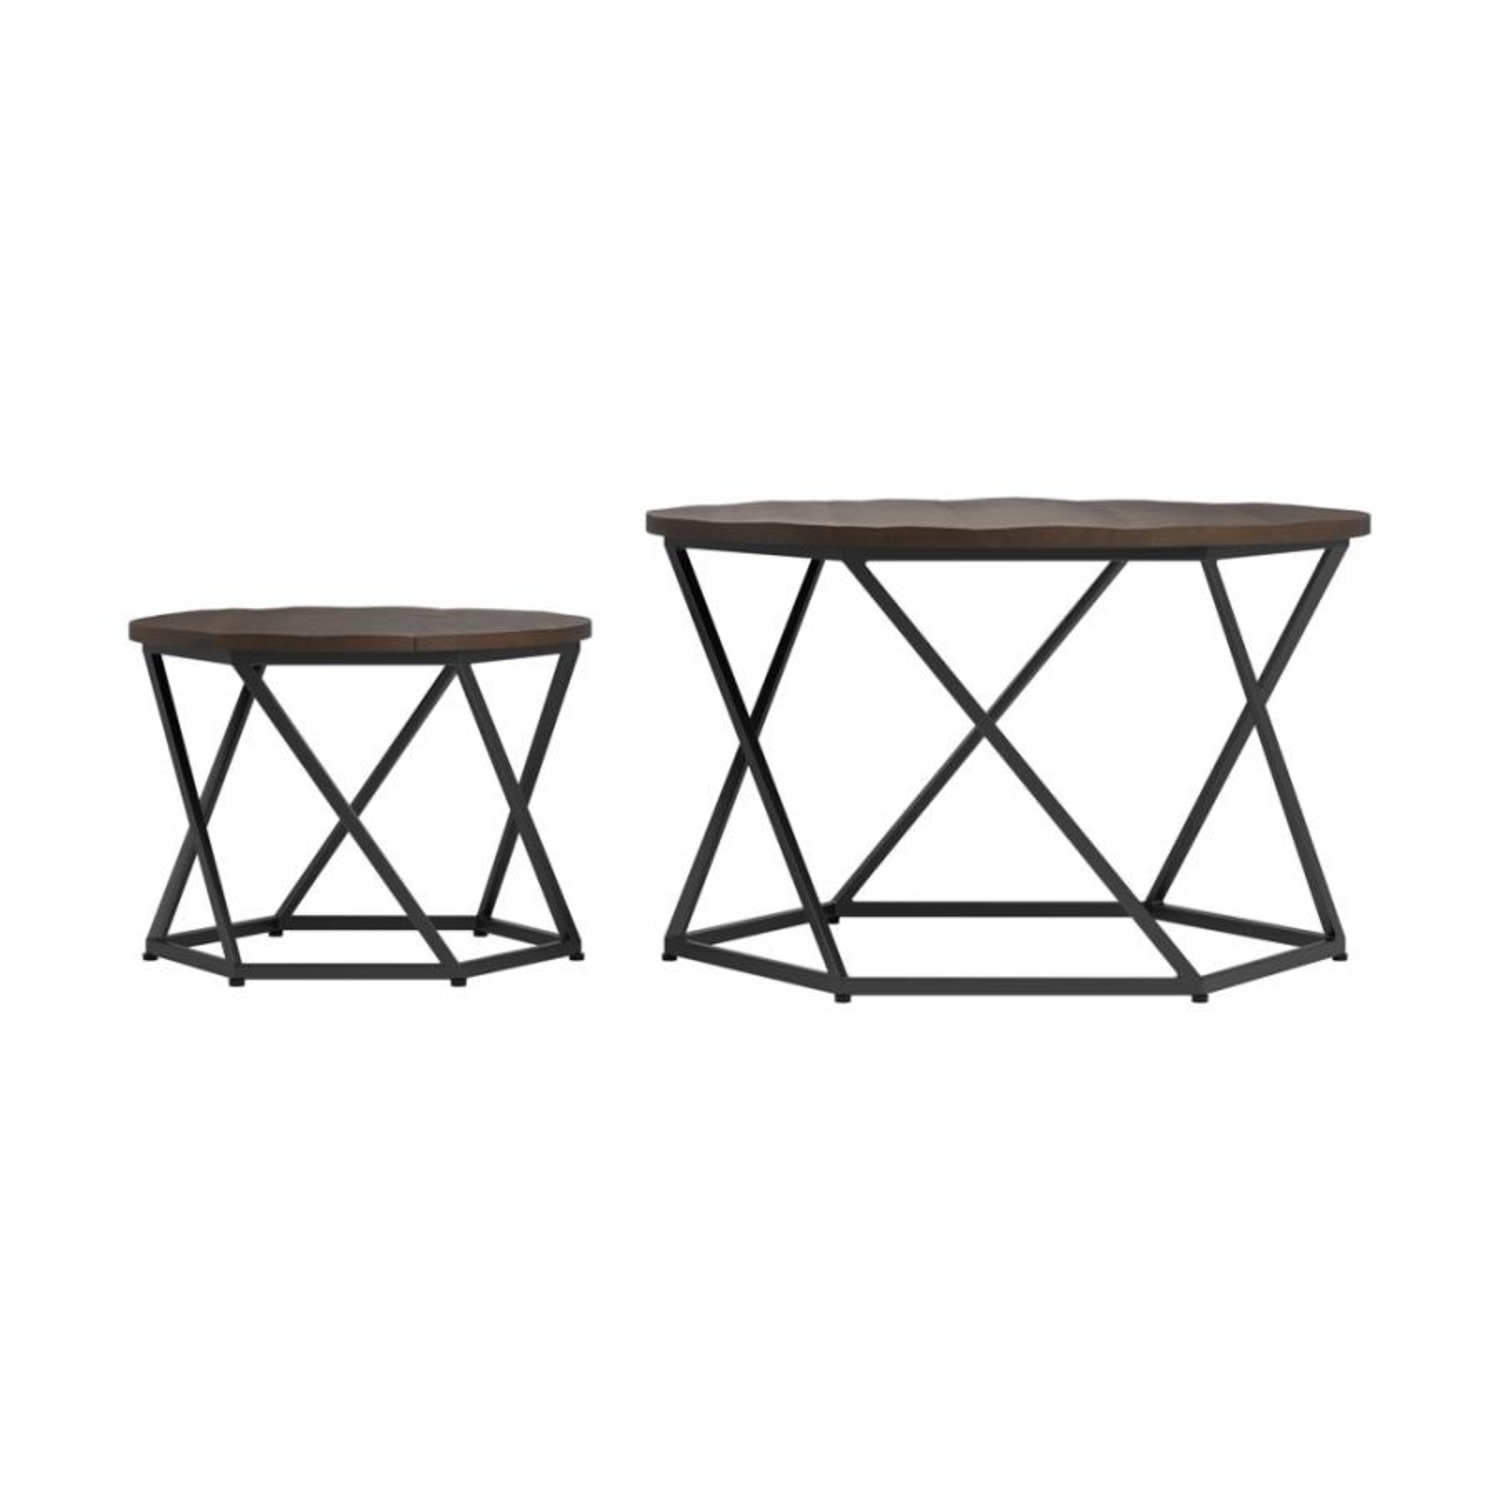 Nesting Table In Natural & Matte Black Finish - image-2